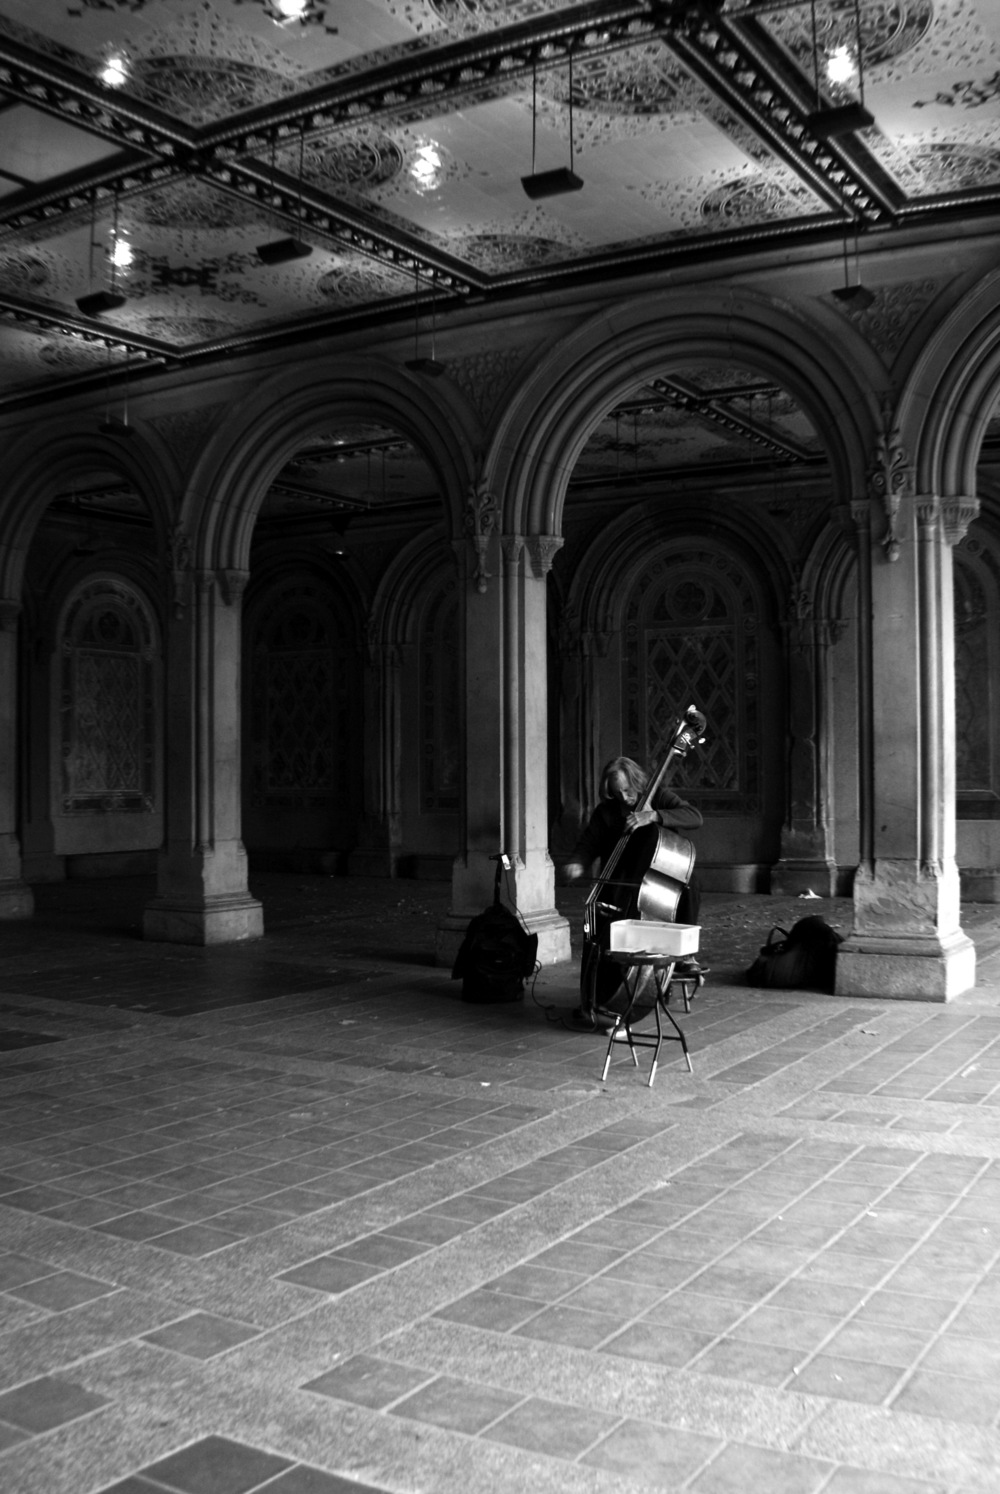 My second day in NYC visiting my friend Helen. We were wandering around Central Park when we came across the cellist playing. His music was soft and slow, echoing in the building. This was one of the things that made me love Central Park.   2/5 - 2014